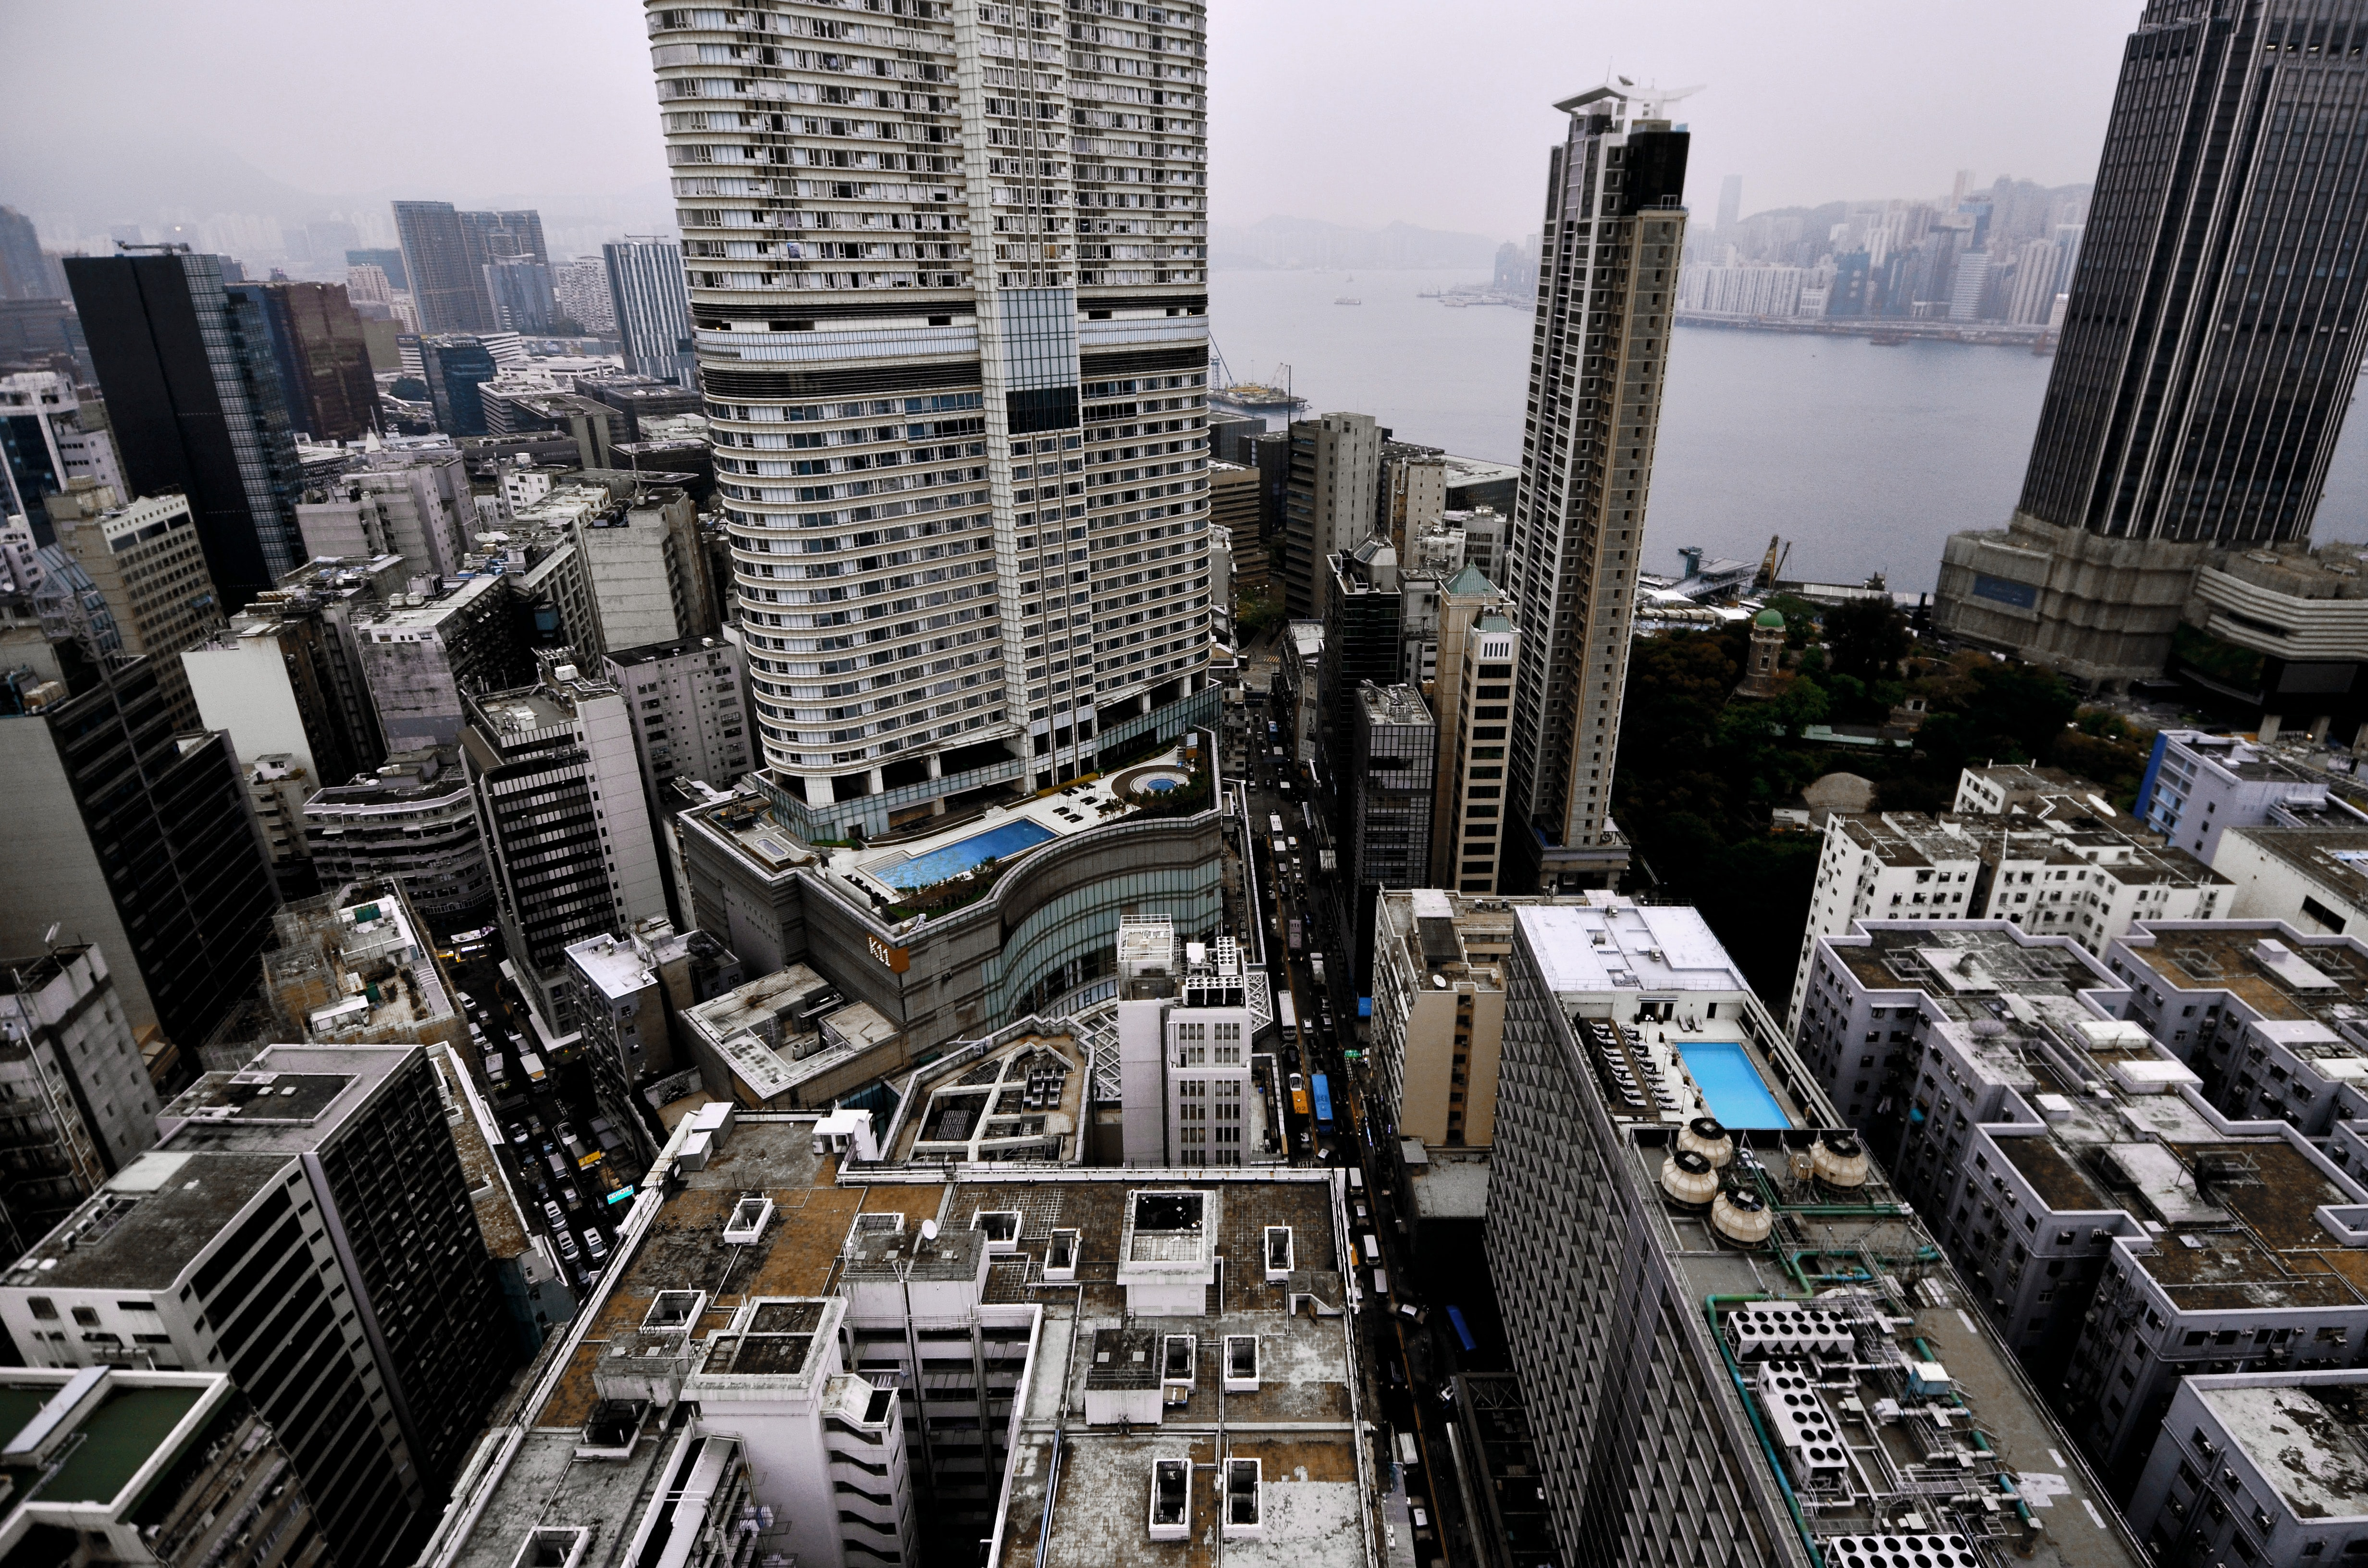 aerial view of commercial buildings